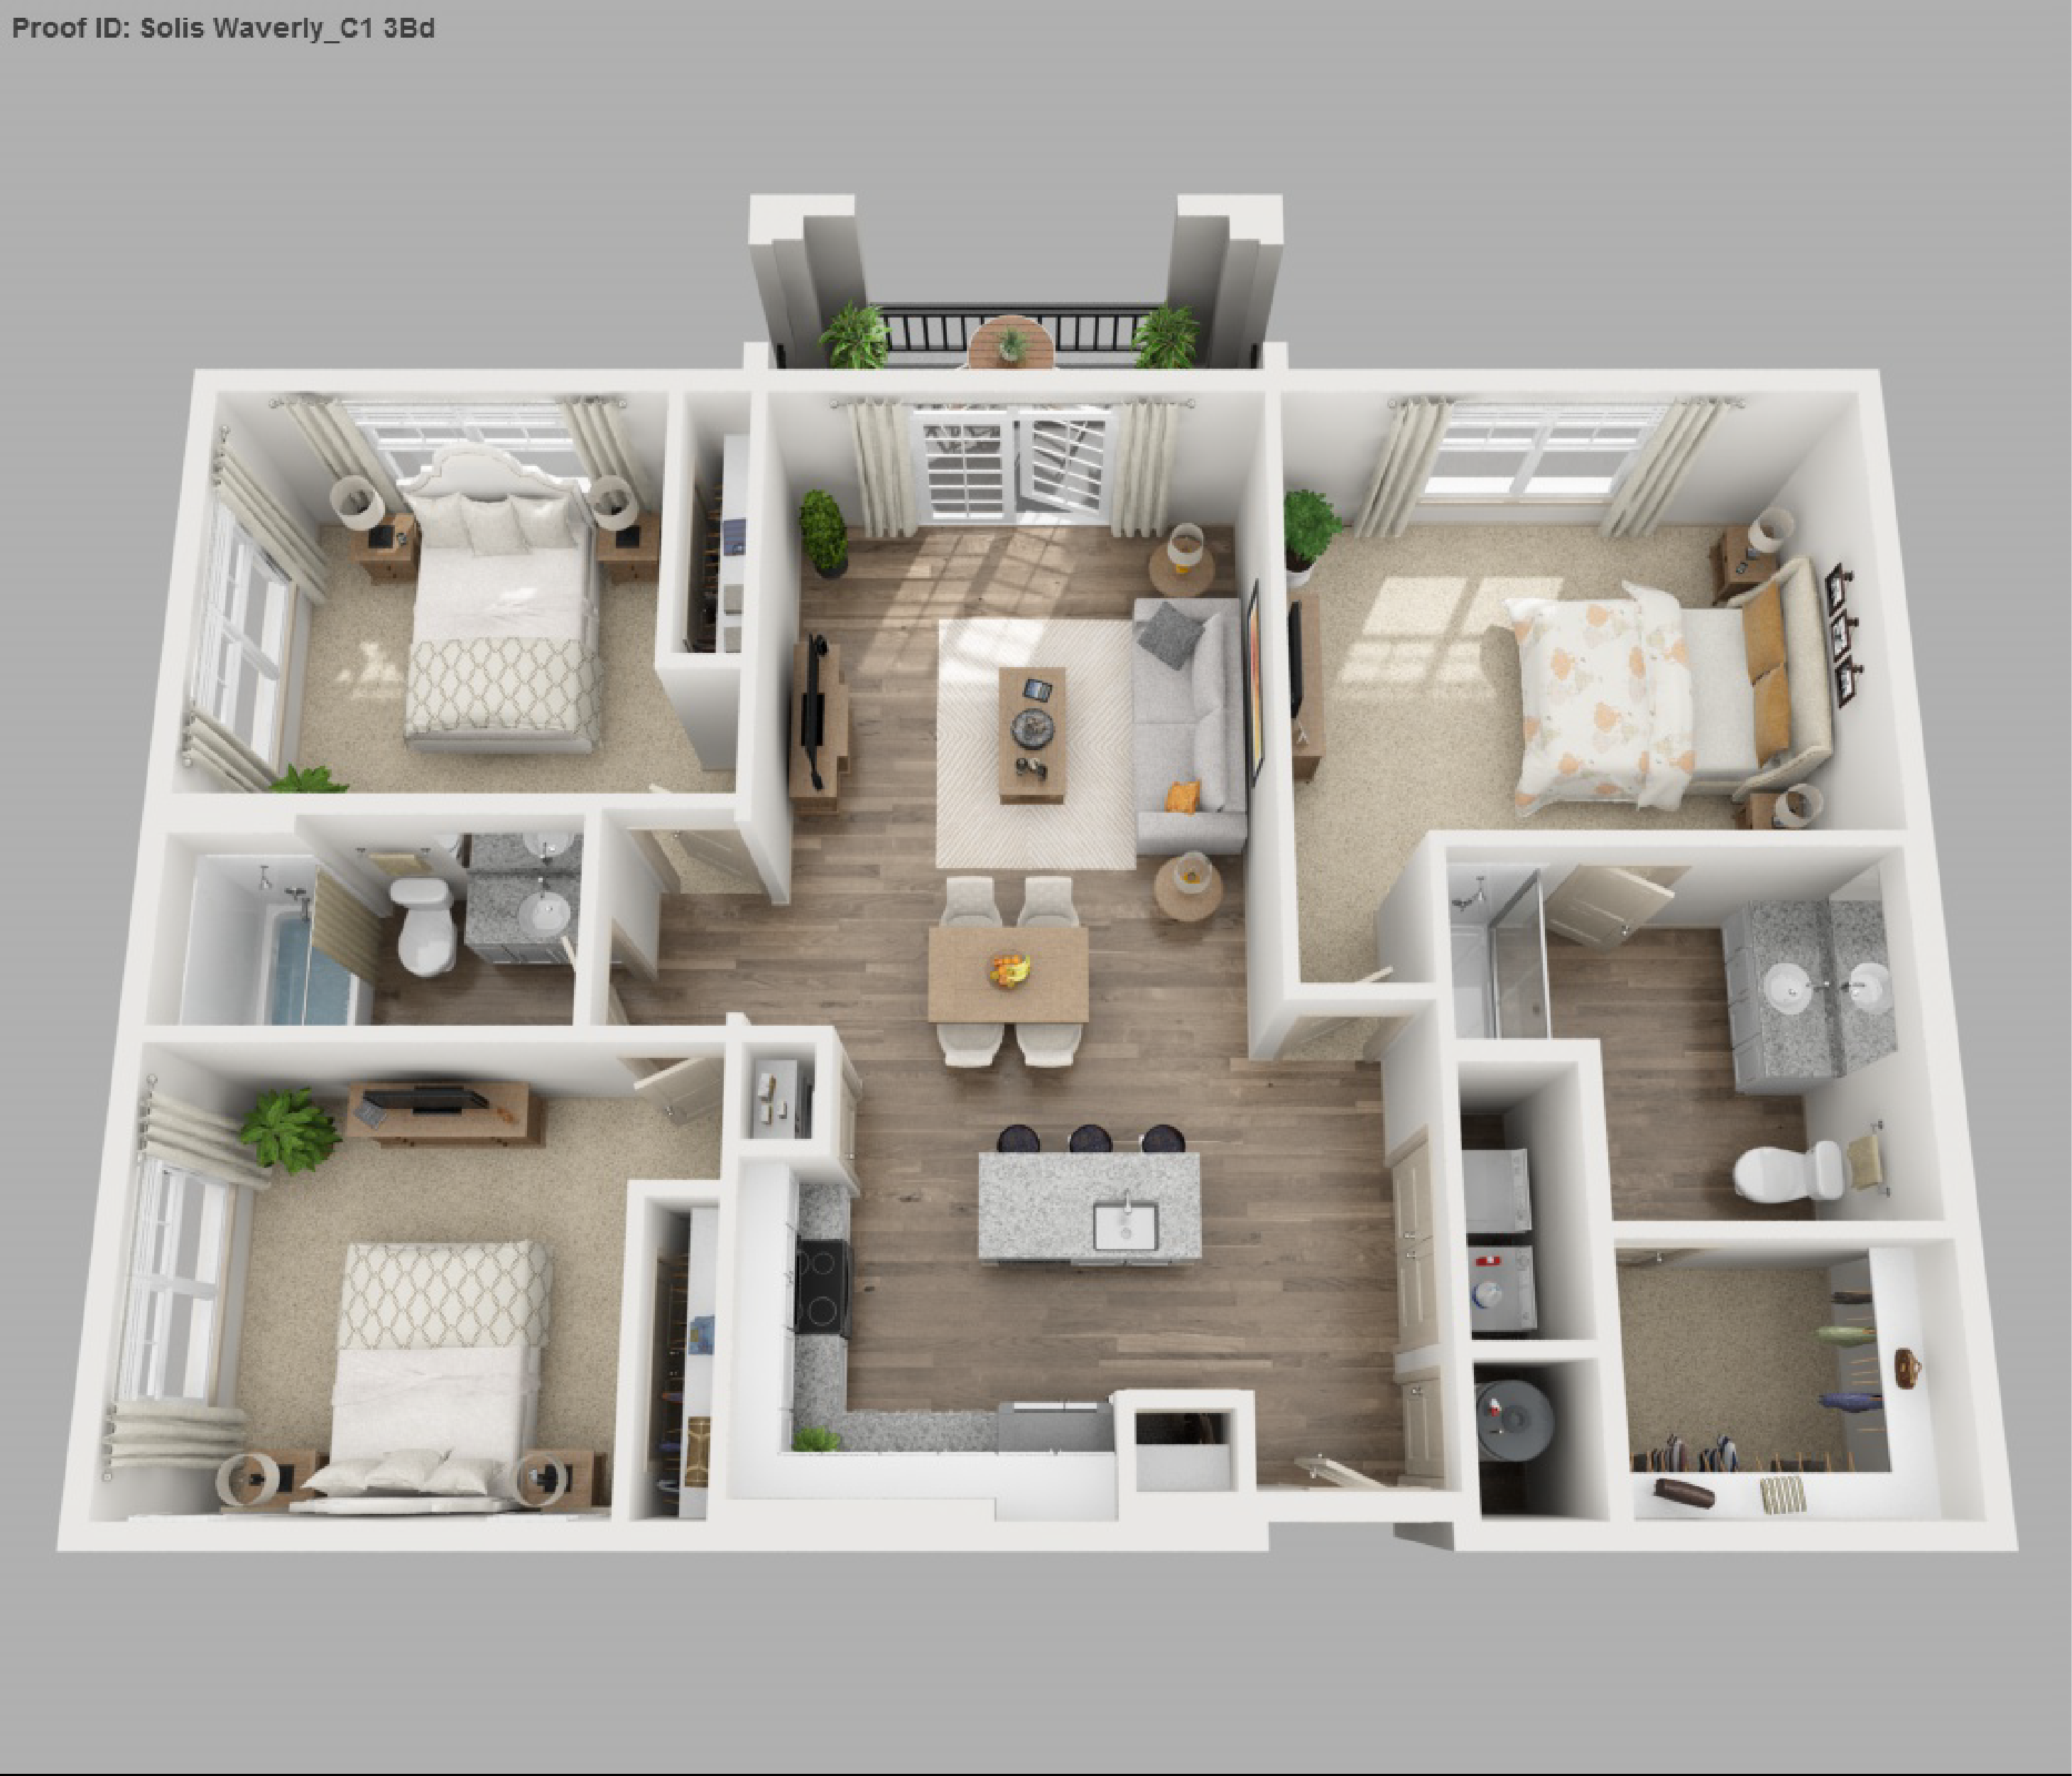 Apartment Floor Plans 3 Bedroom solis apartments floorplans - waverly